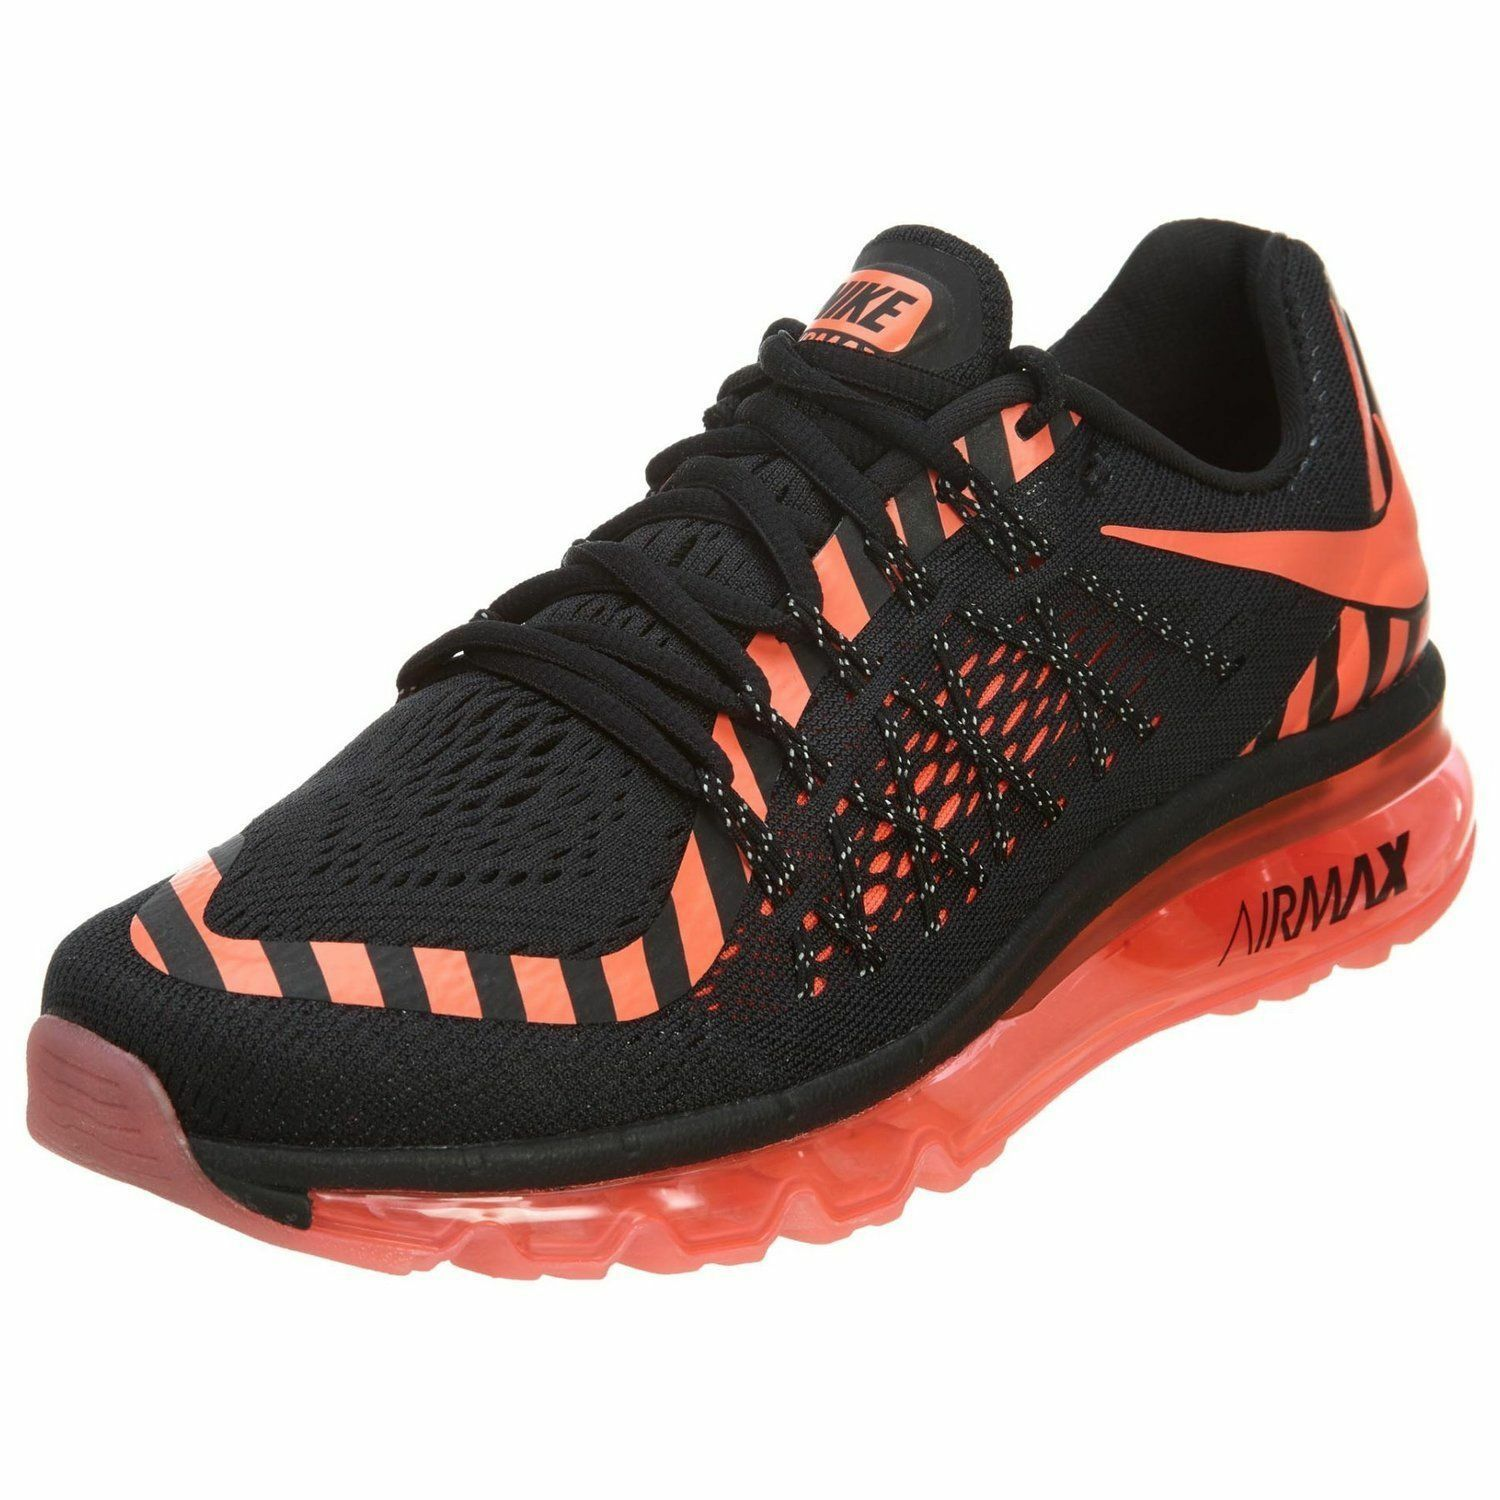 NEW NR NIKE AIR MAX 2015 NR NEW Running Black Lava WOMENS 7 Limited NR d1b627